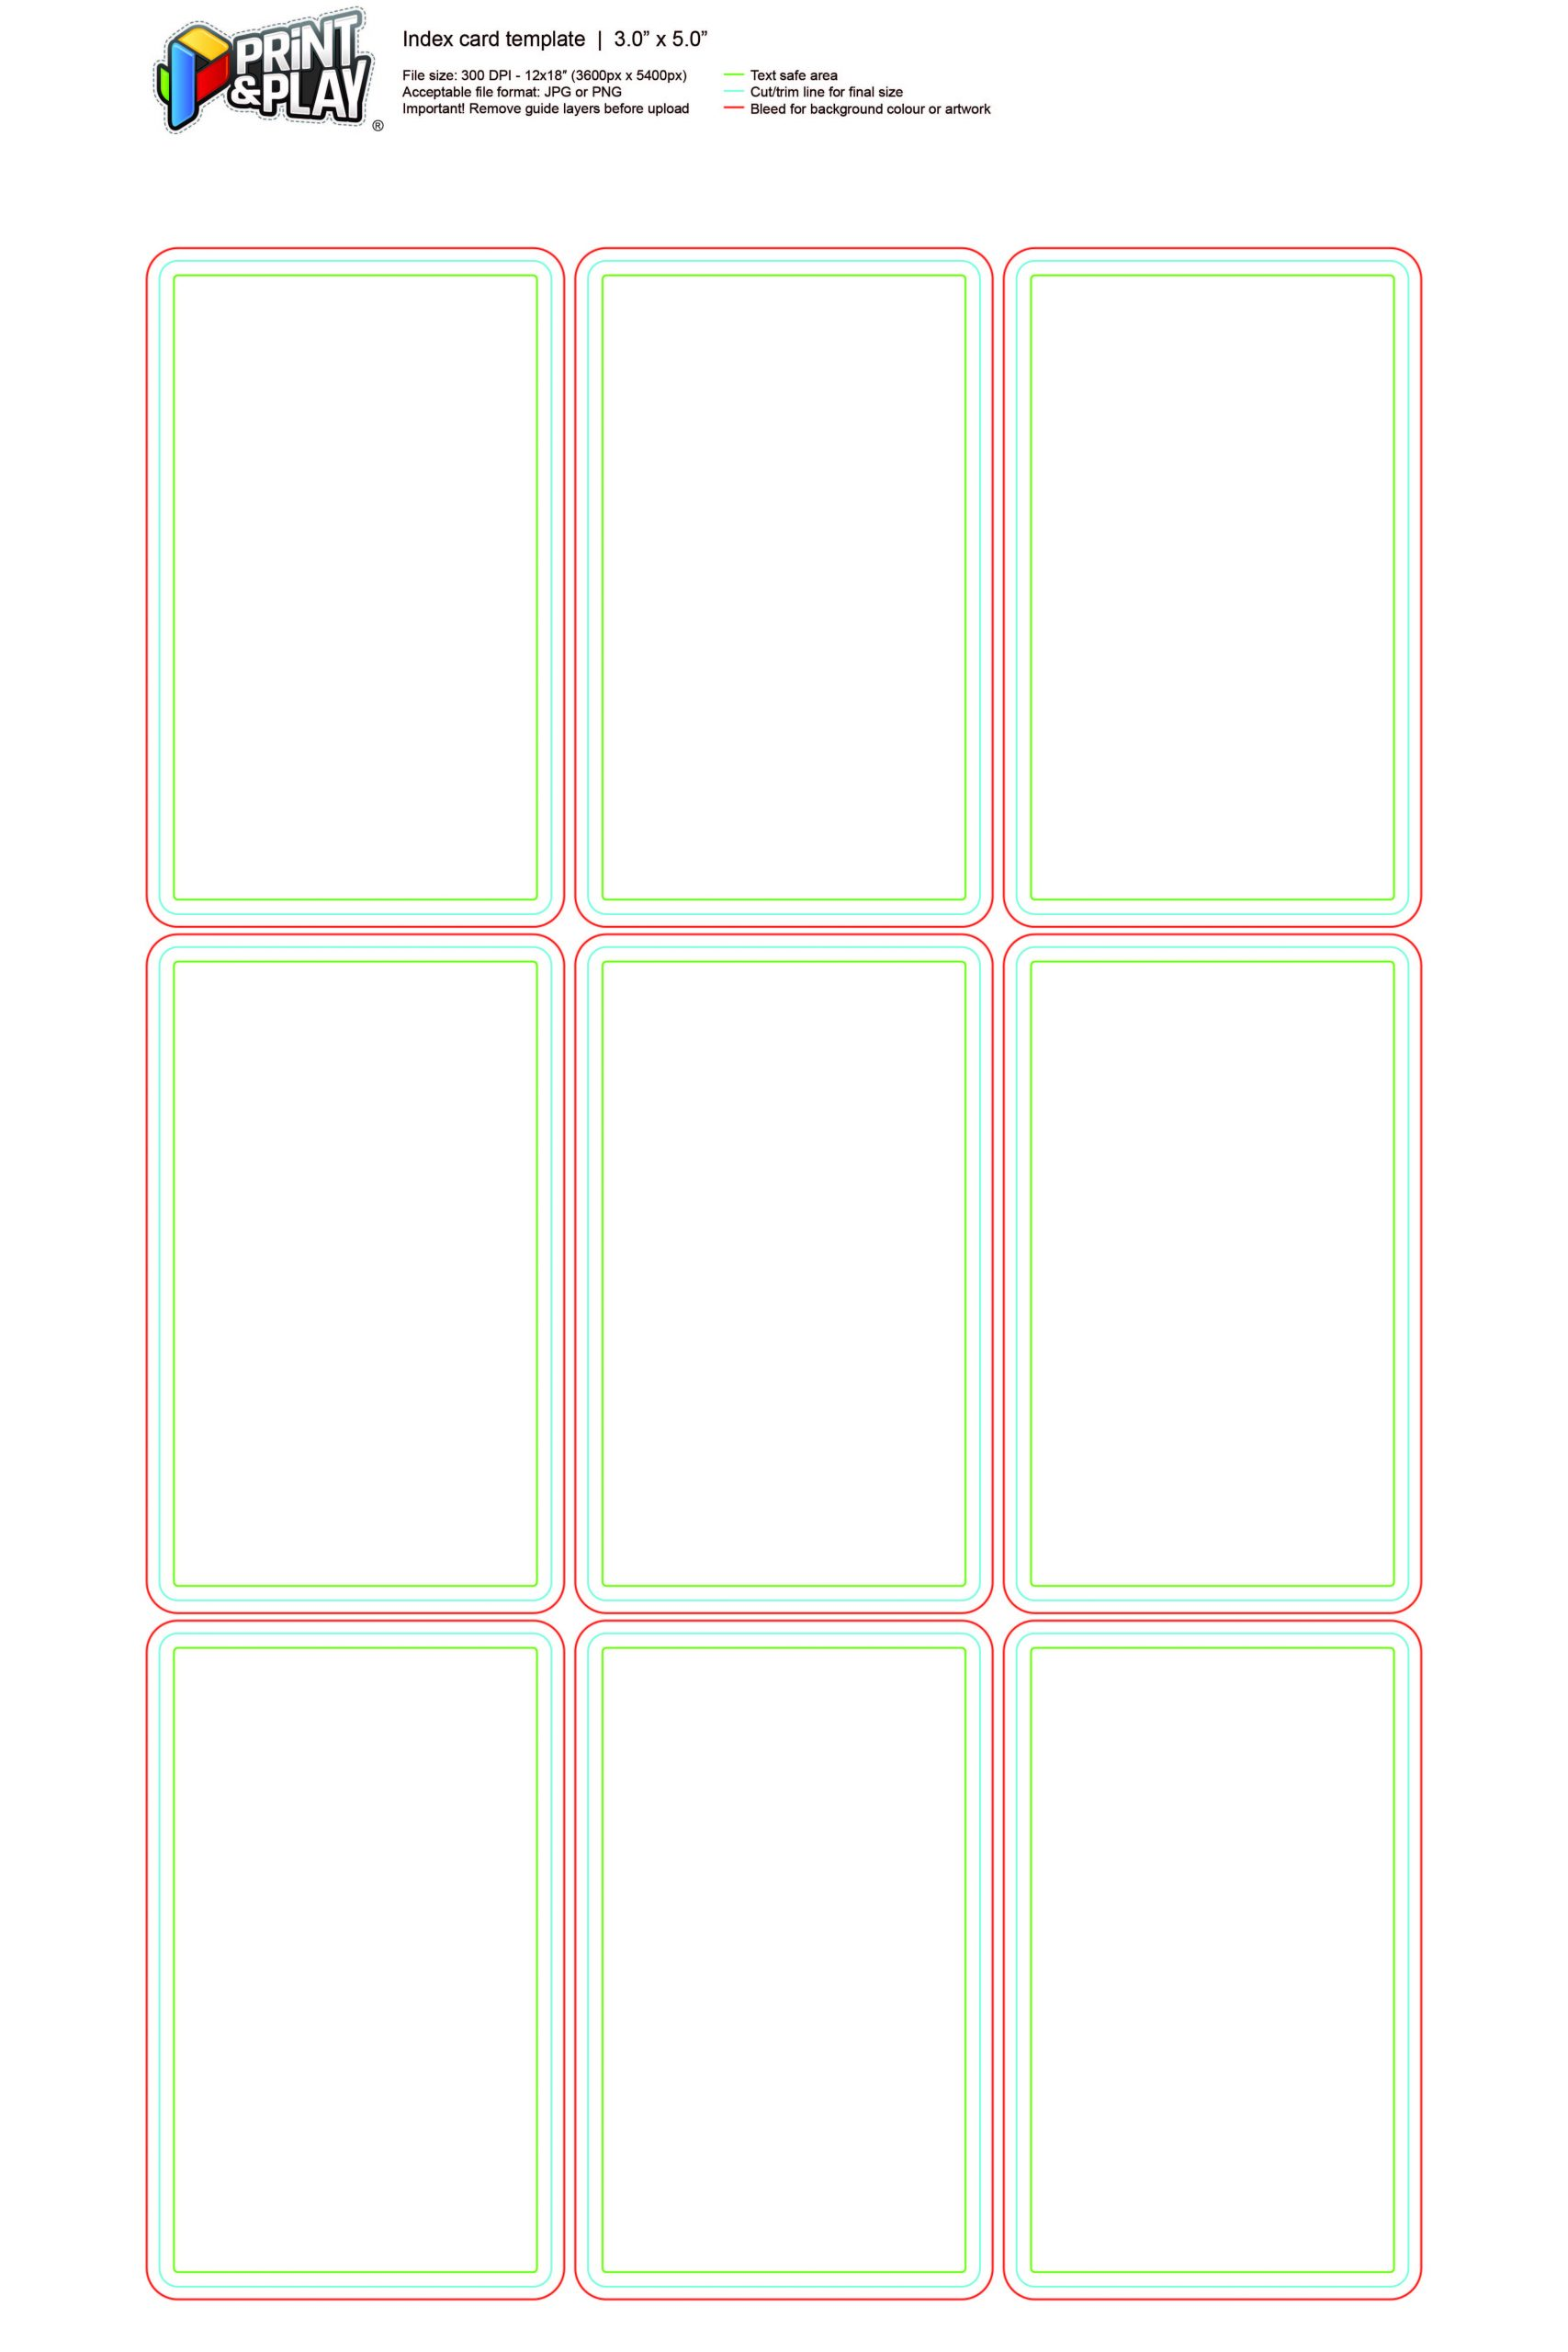 Index Card Template Word